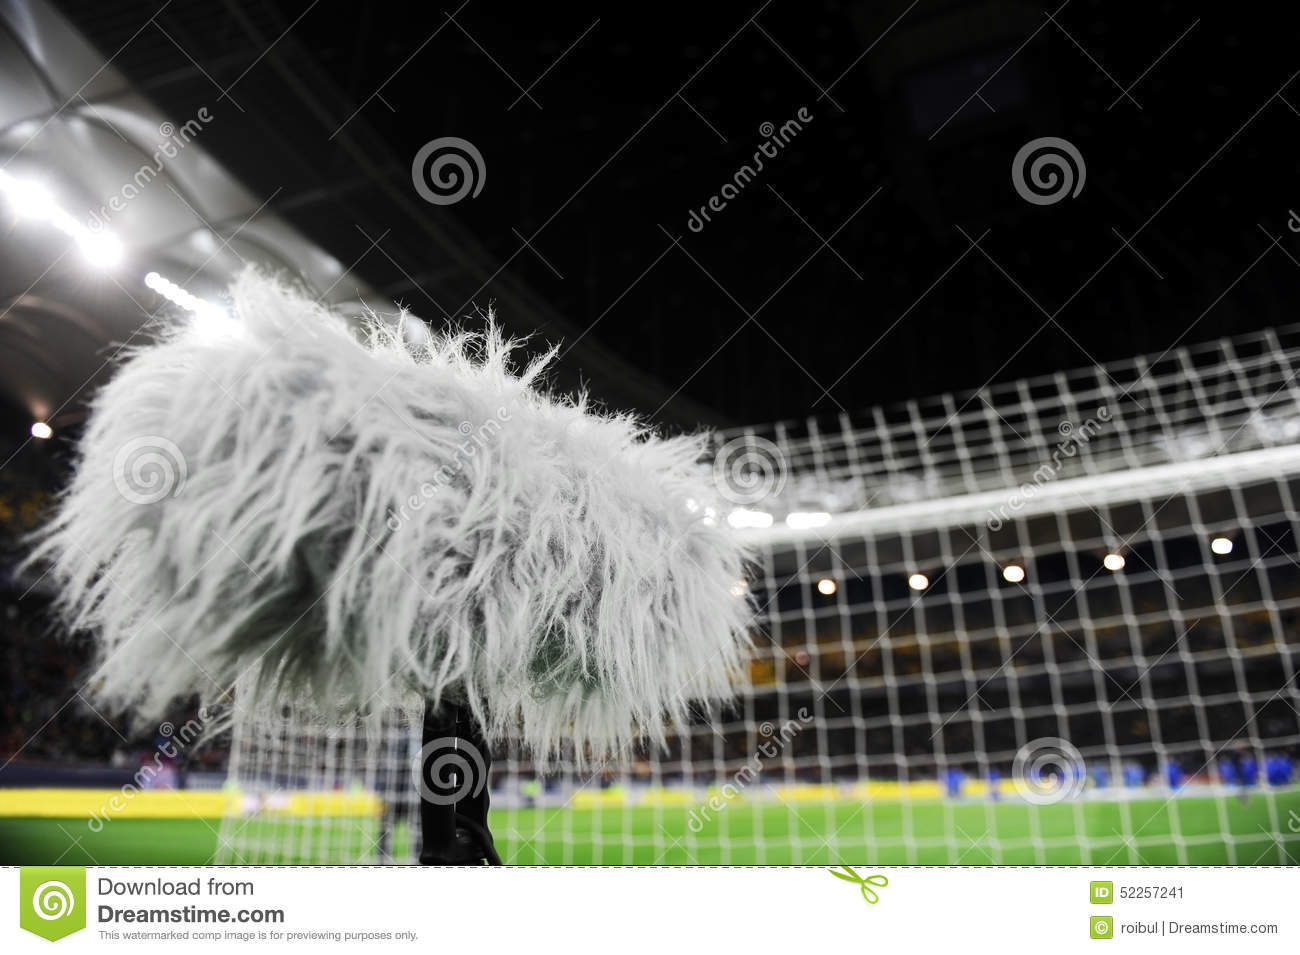 d63bce3e8 Big Microphone On Sport Arena Stock Image - Image of ground, detail ...